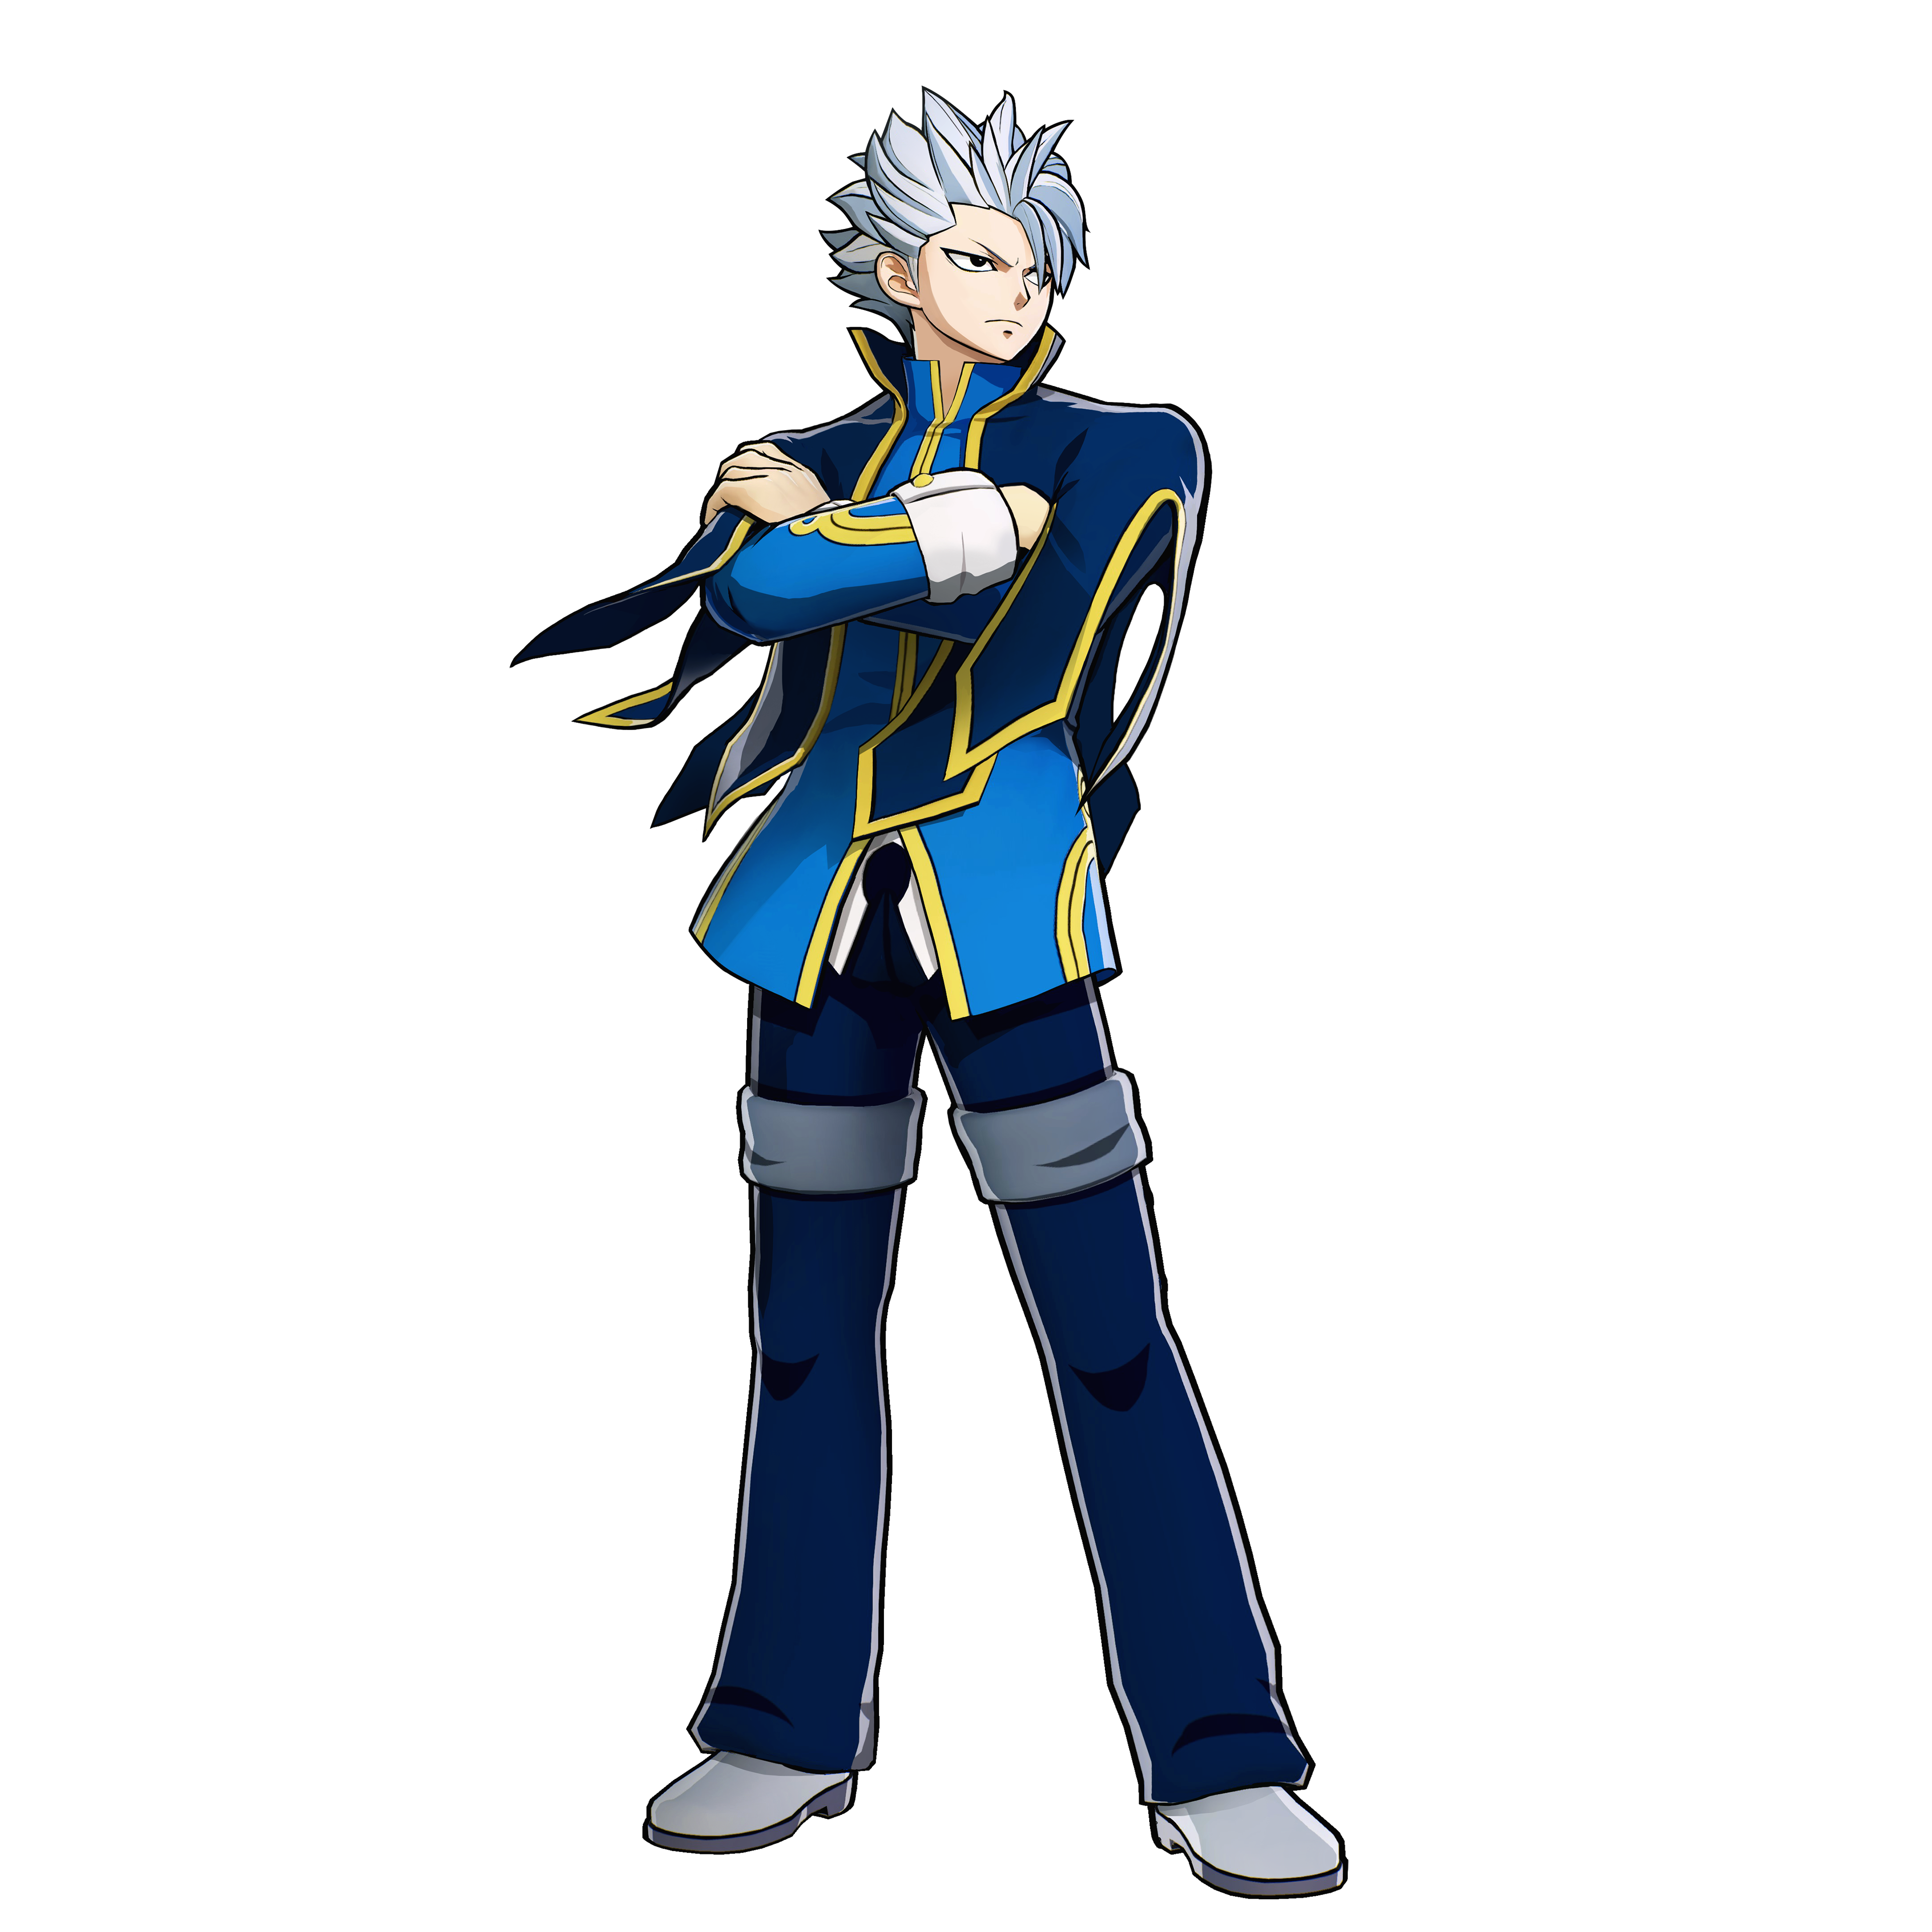 Lyon Vastia Render (Fairy Tail Game).png